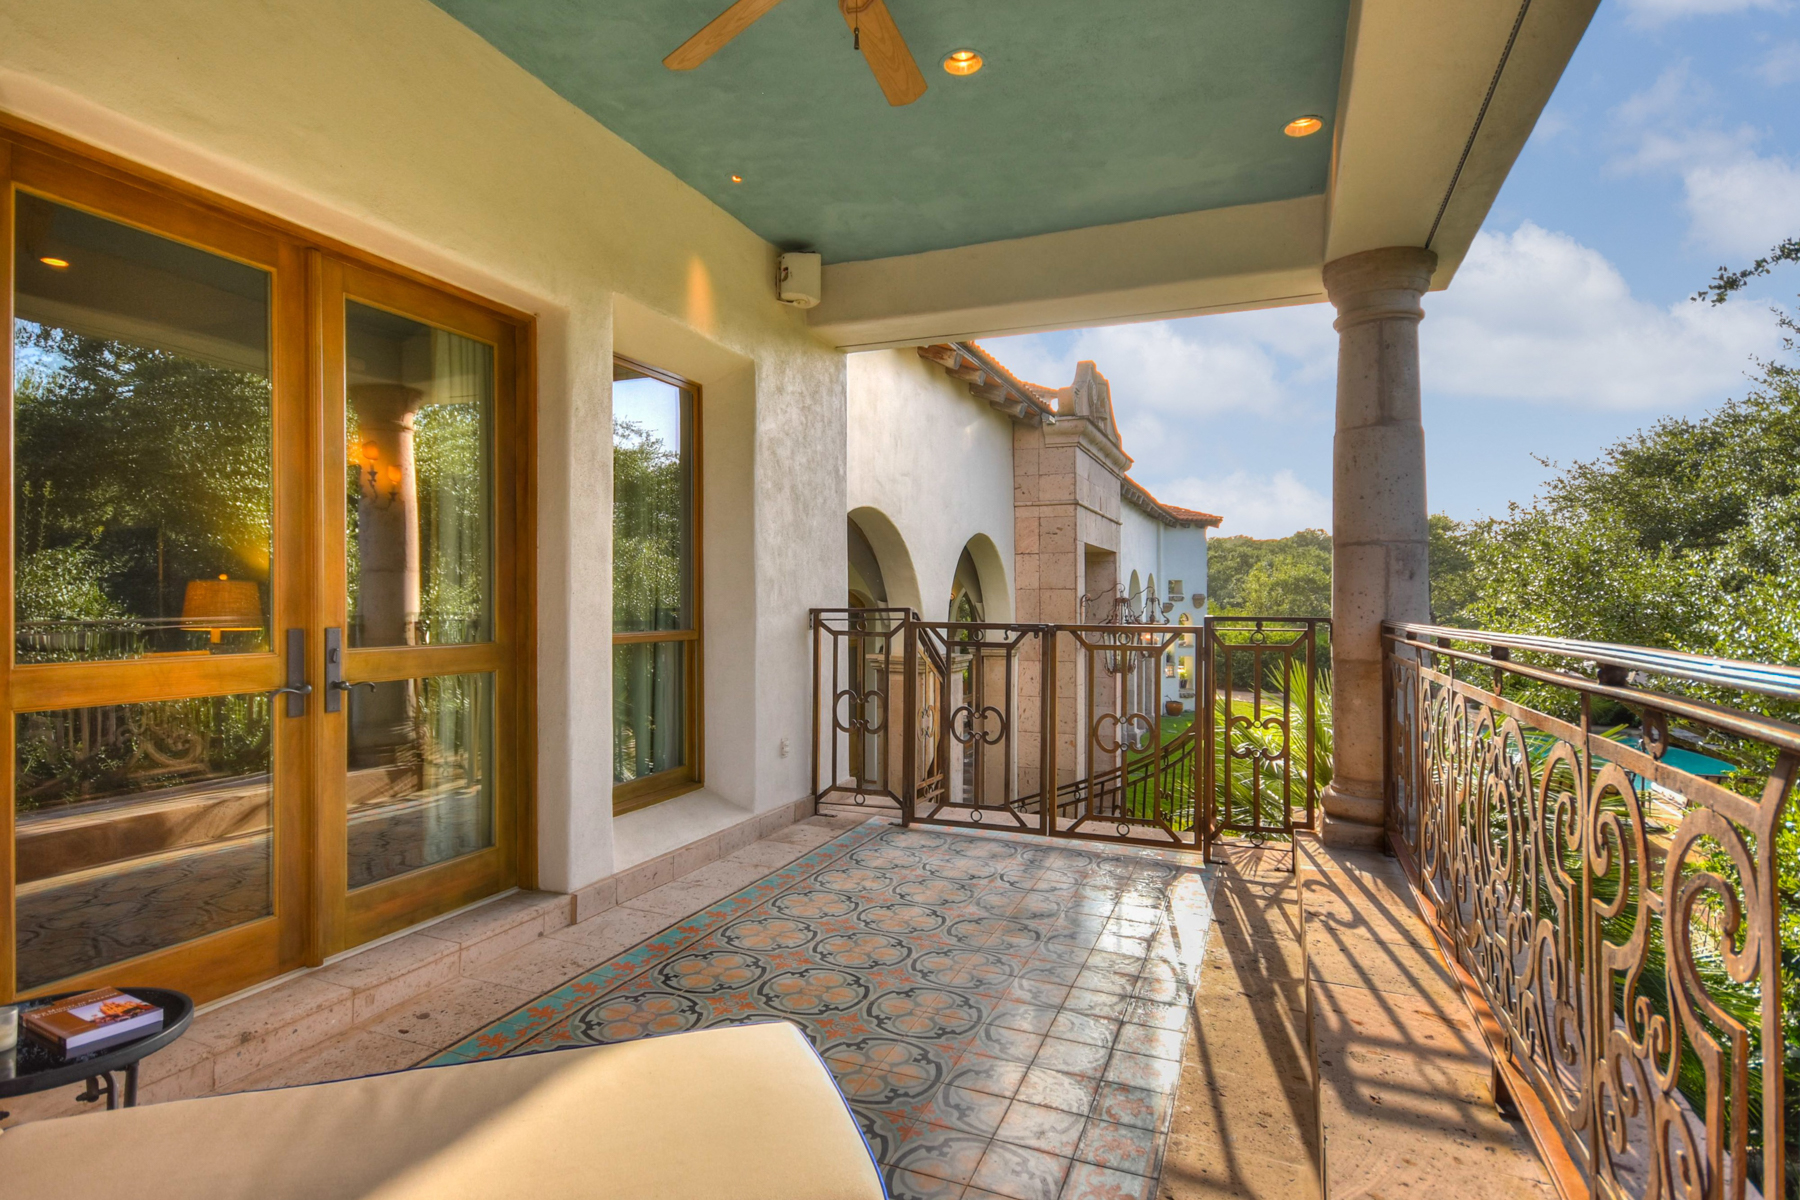 Additional photo for property listing at Serene Paradise in Greystone 1726 Greystone Rdg San Antonio, Texas 78258 Estados Unidos